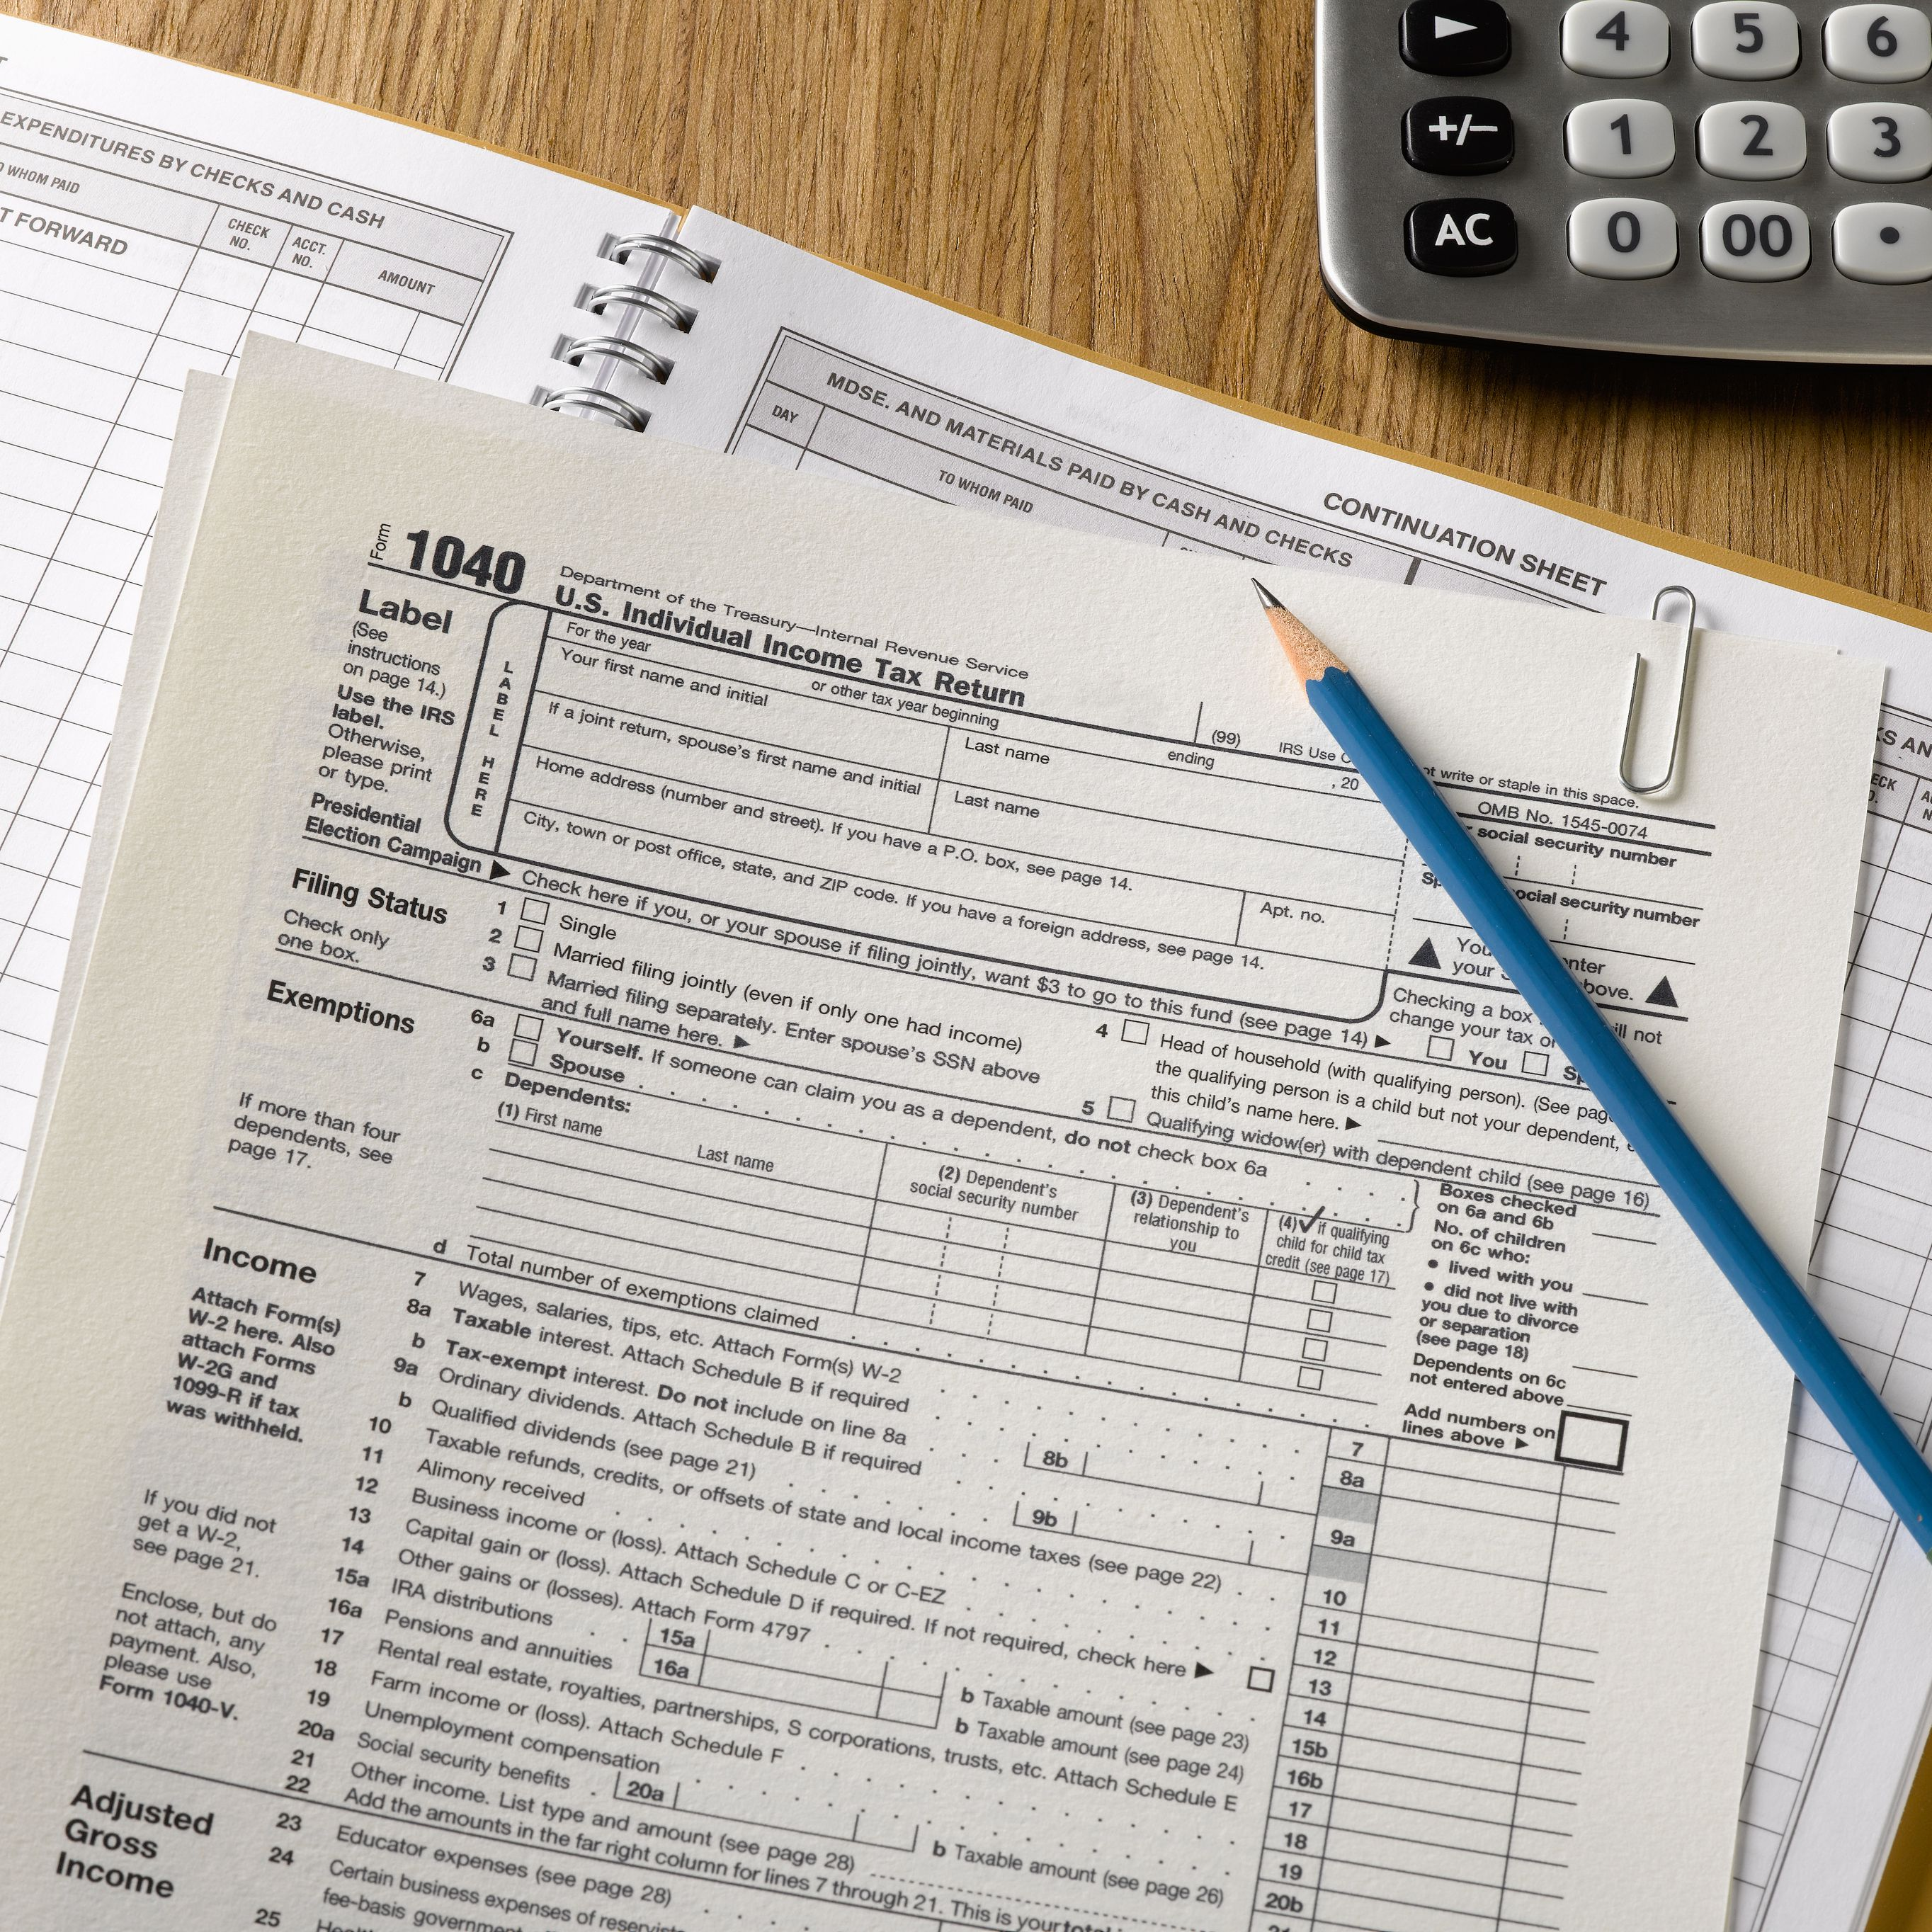 Filing a Late Tax Return and Protecting Your Refunds